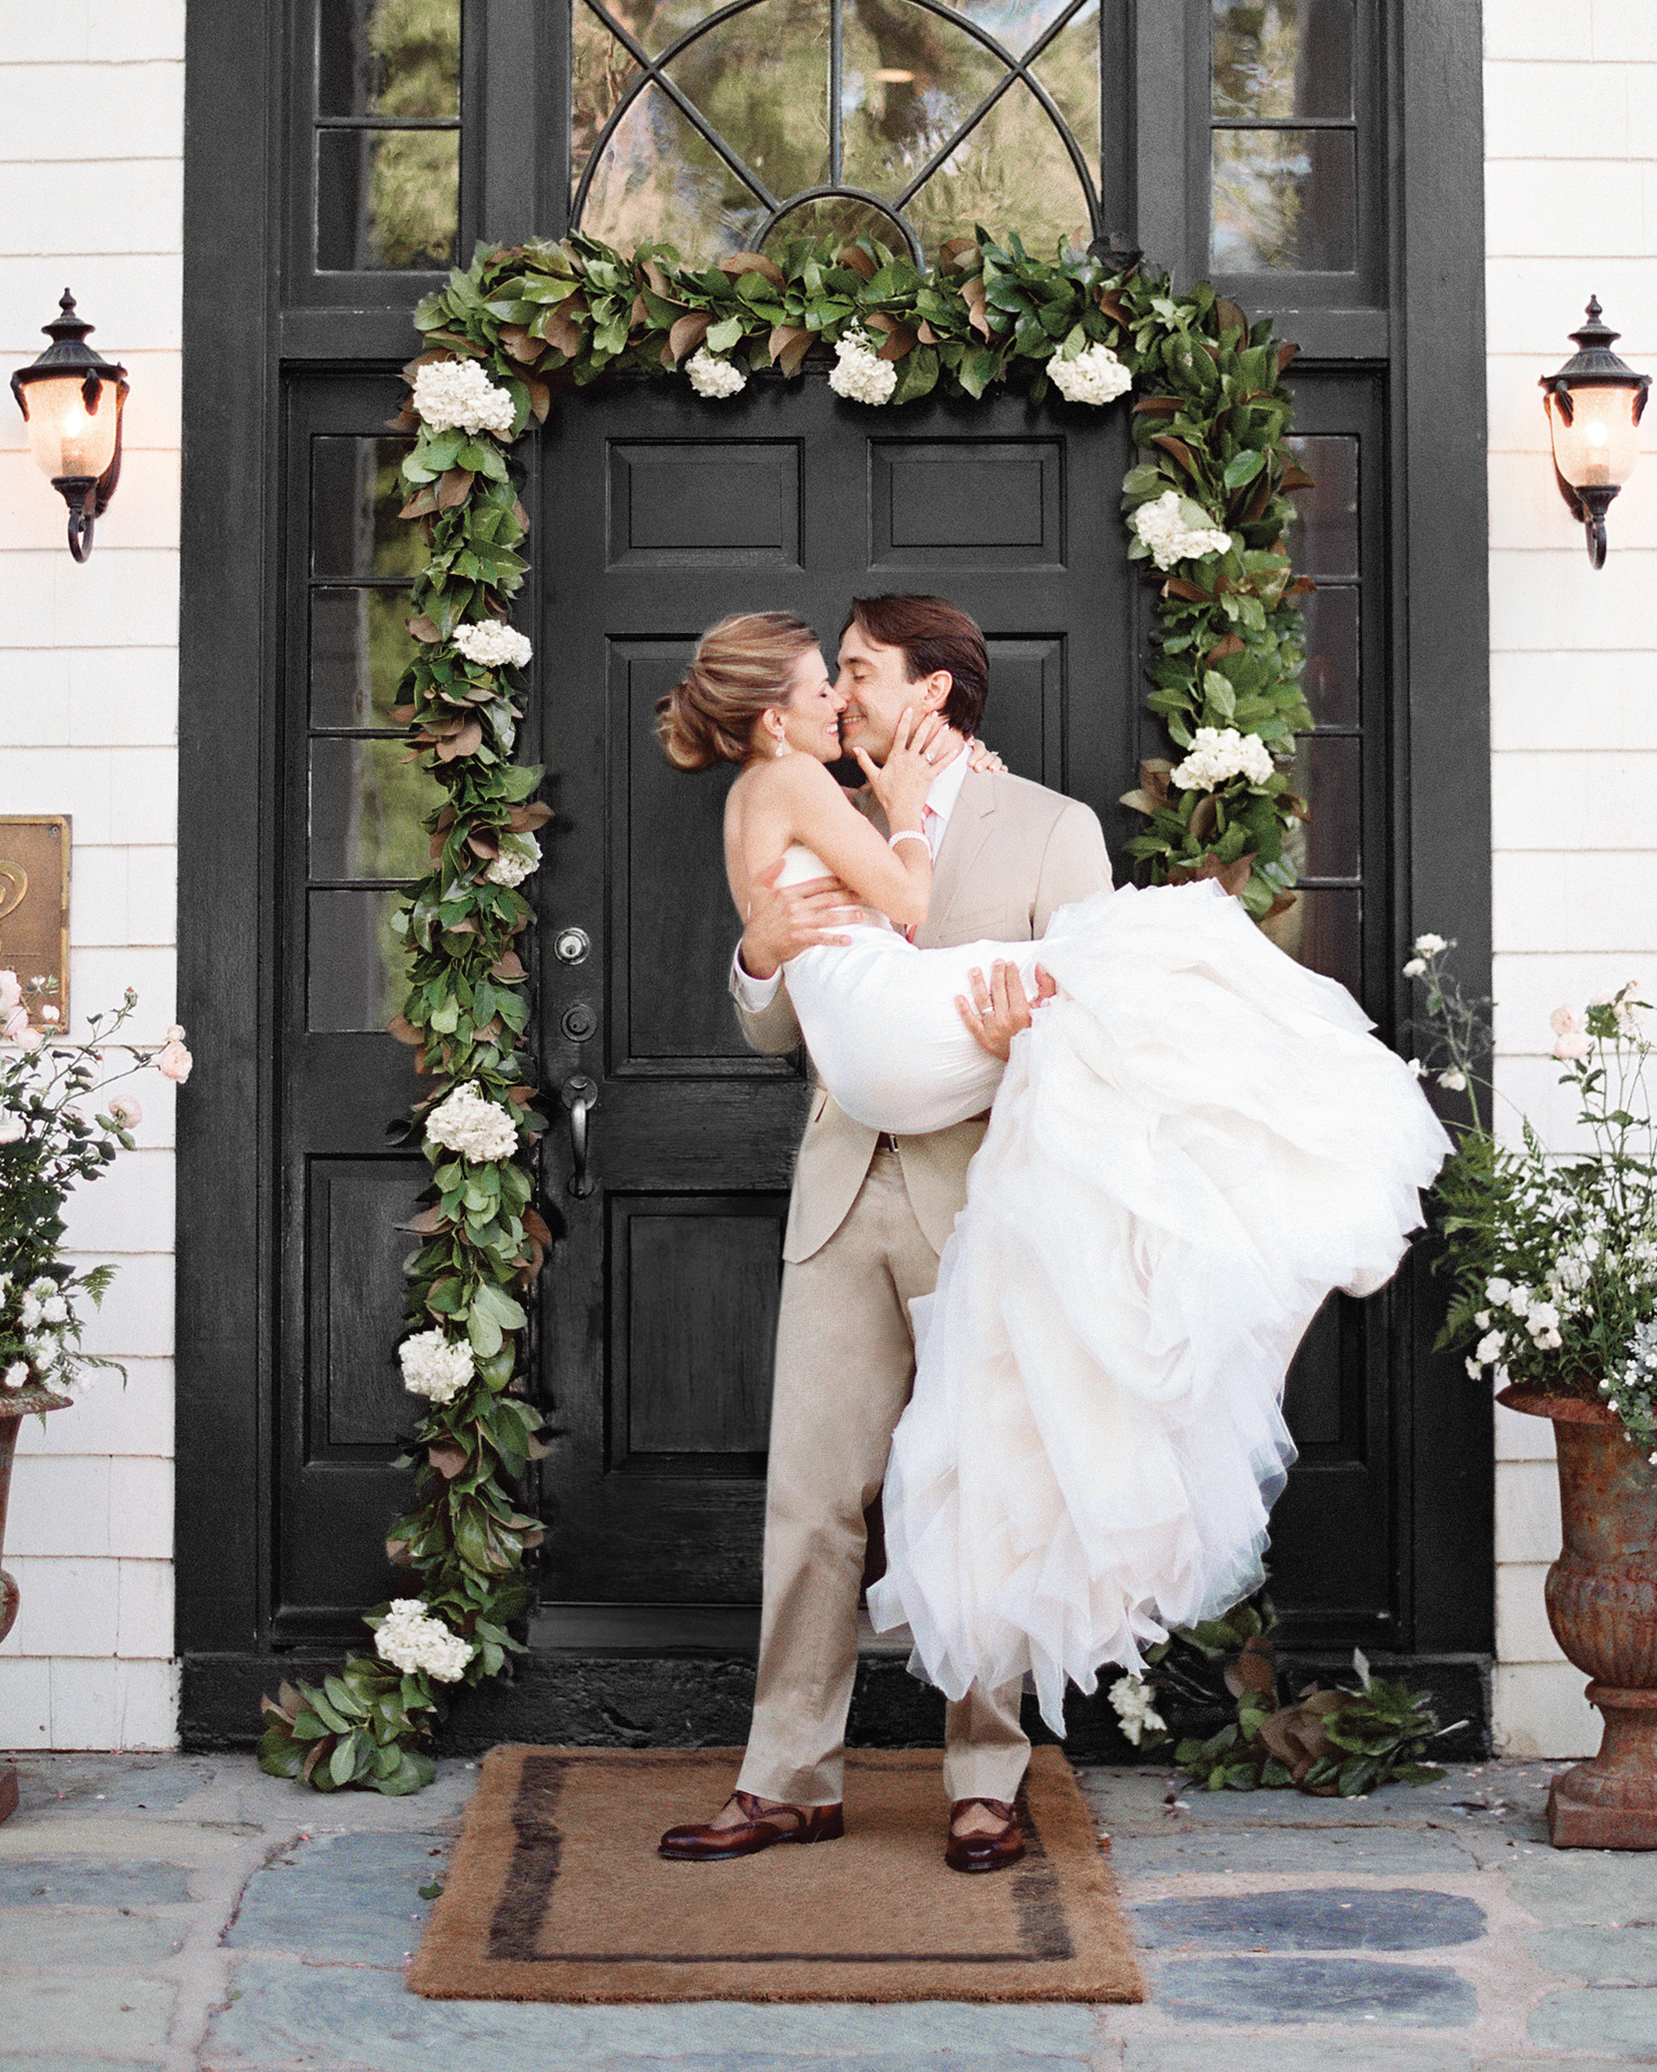 joanna-kyle-real-weddings-bride-groom-front-door-009012-r1-003-d111223.jpg